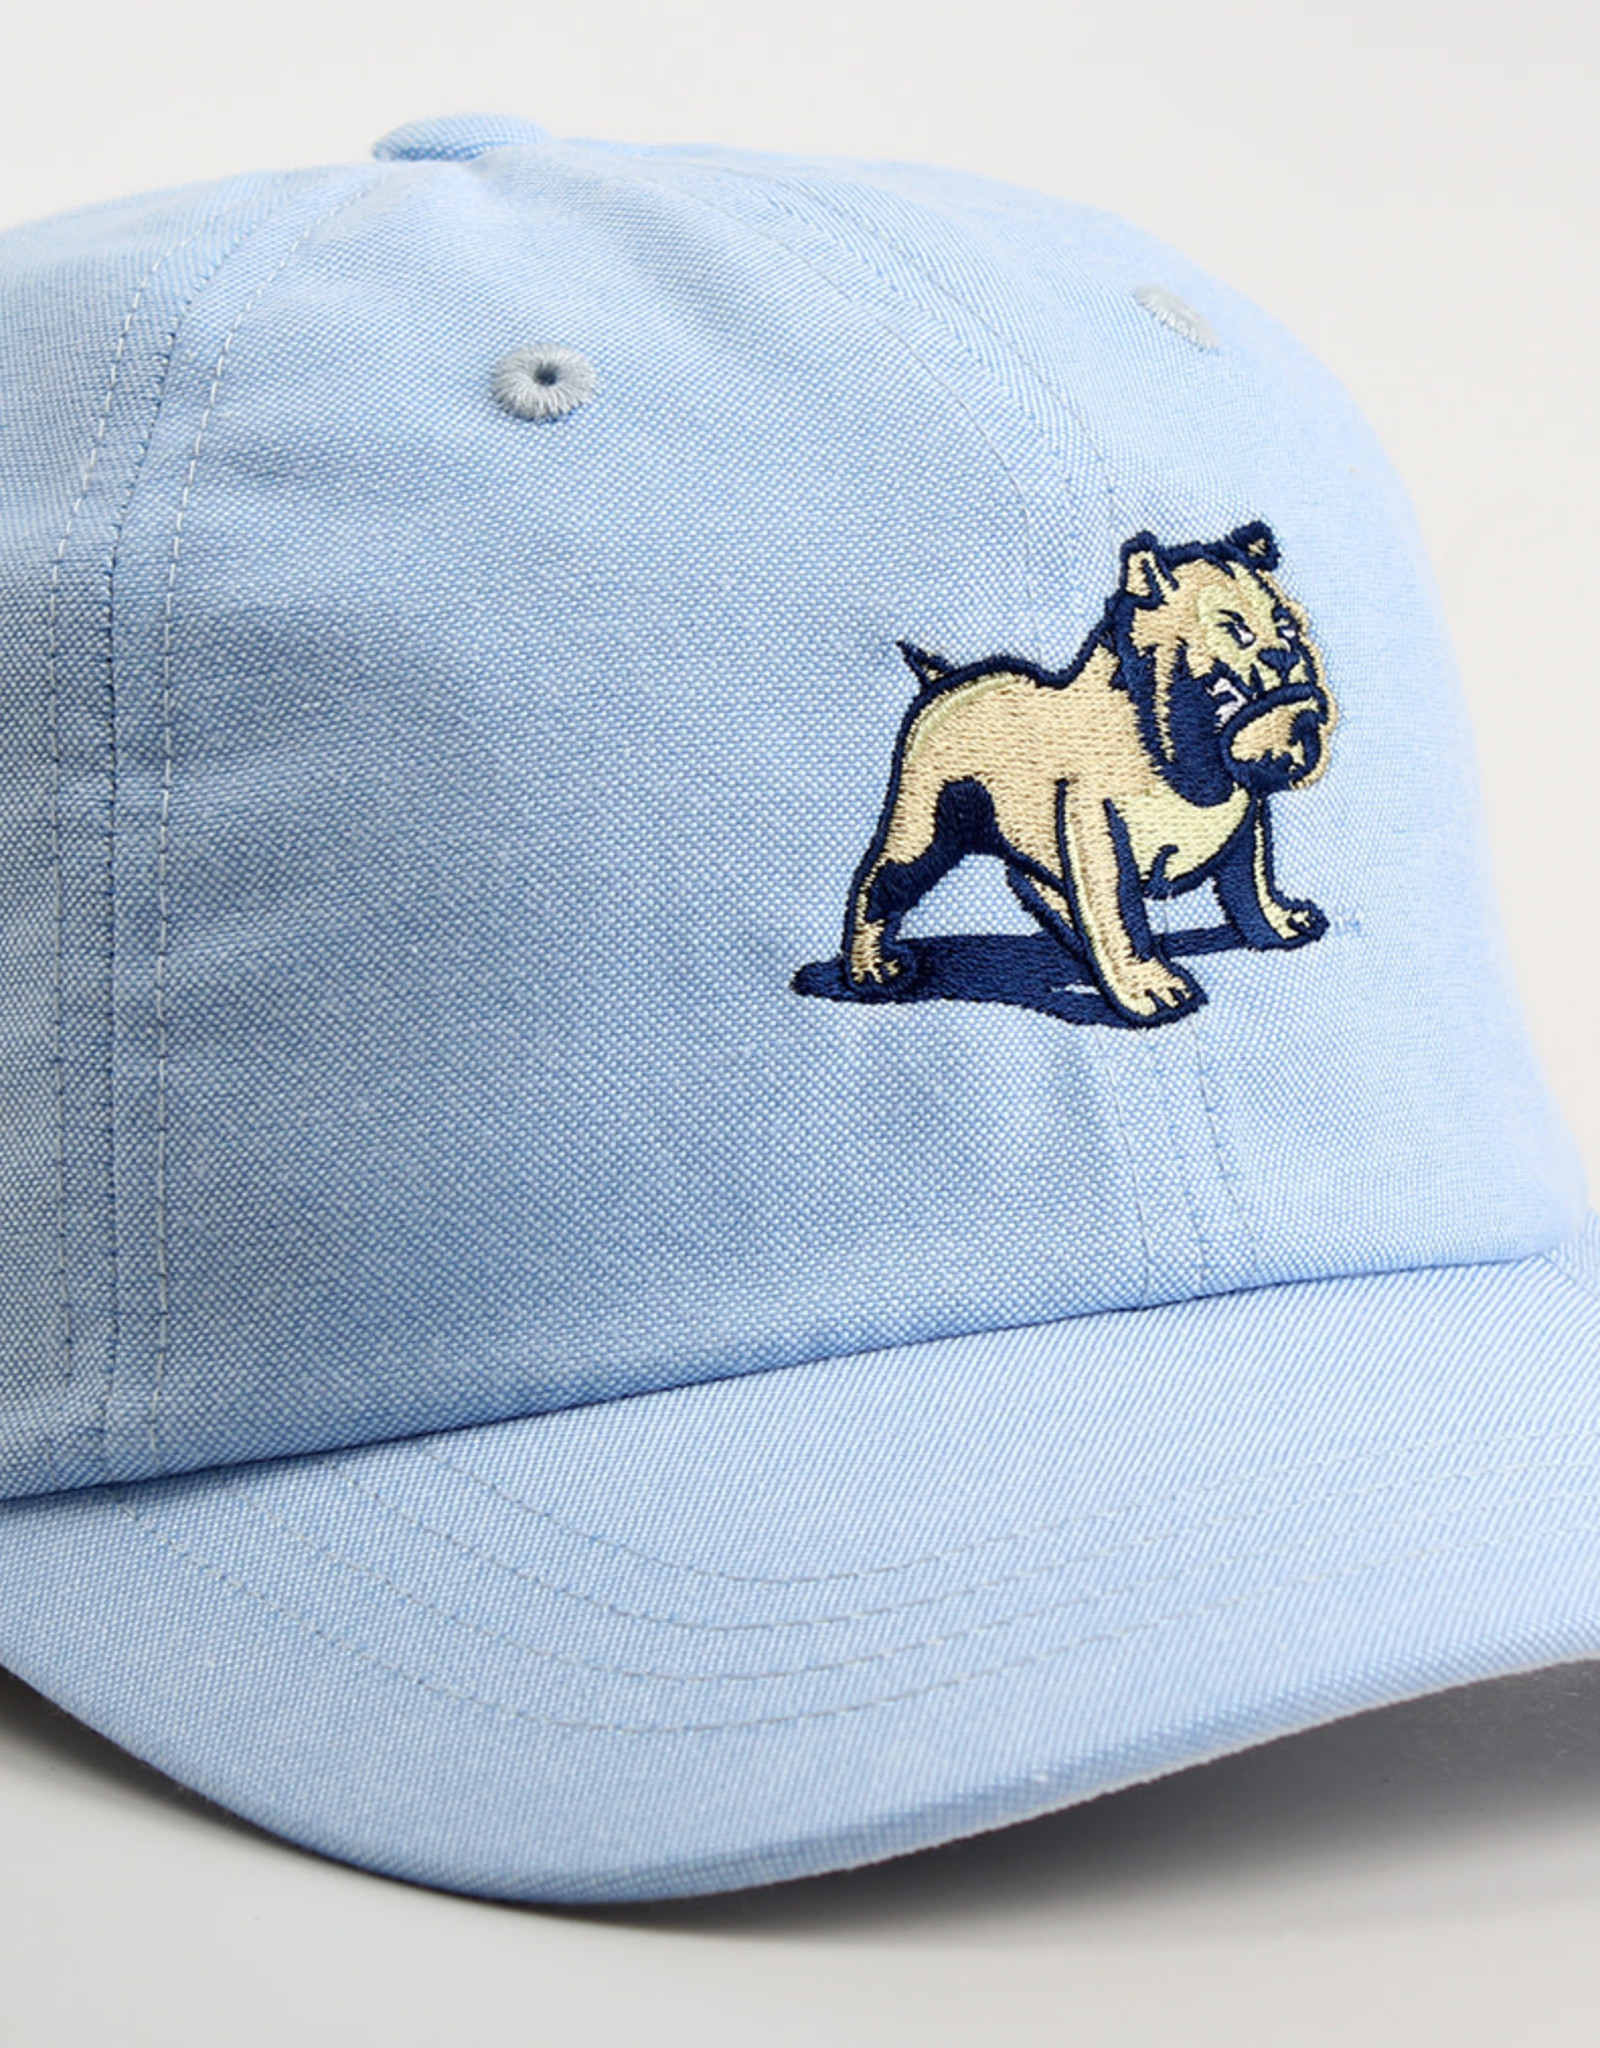 Ahead Standing Bulldog Chambray Oxford Prep Solid Mid Fit Unstructured Adjustable Hat